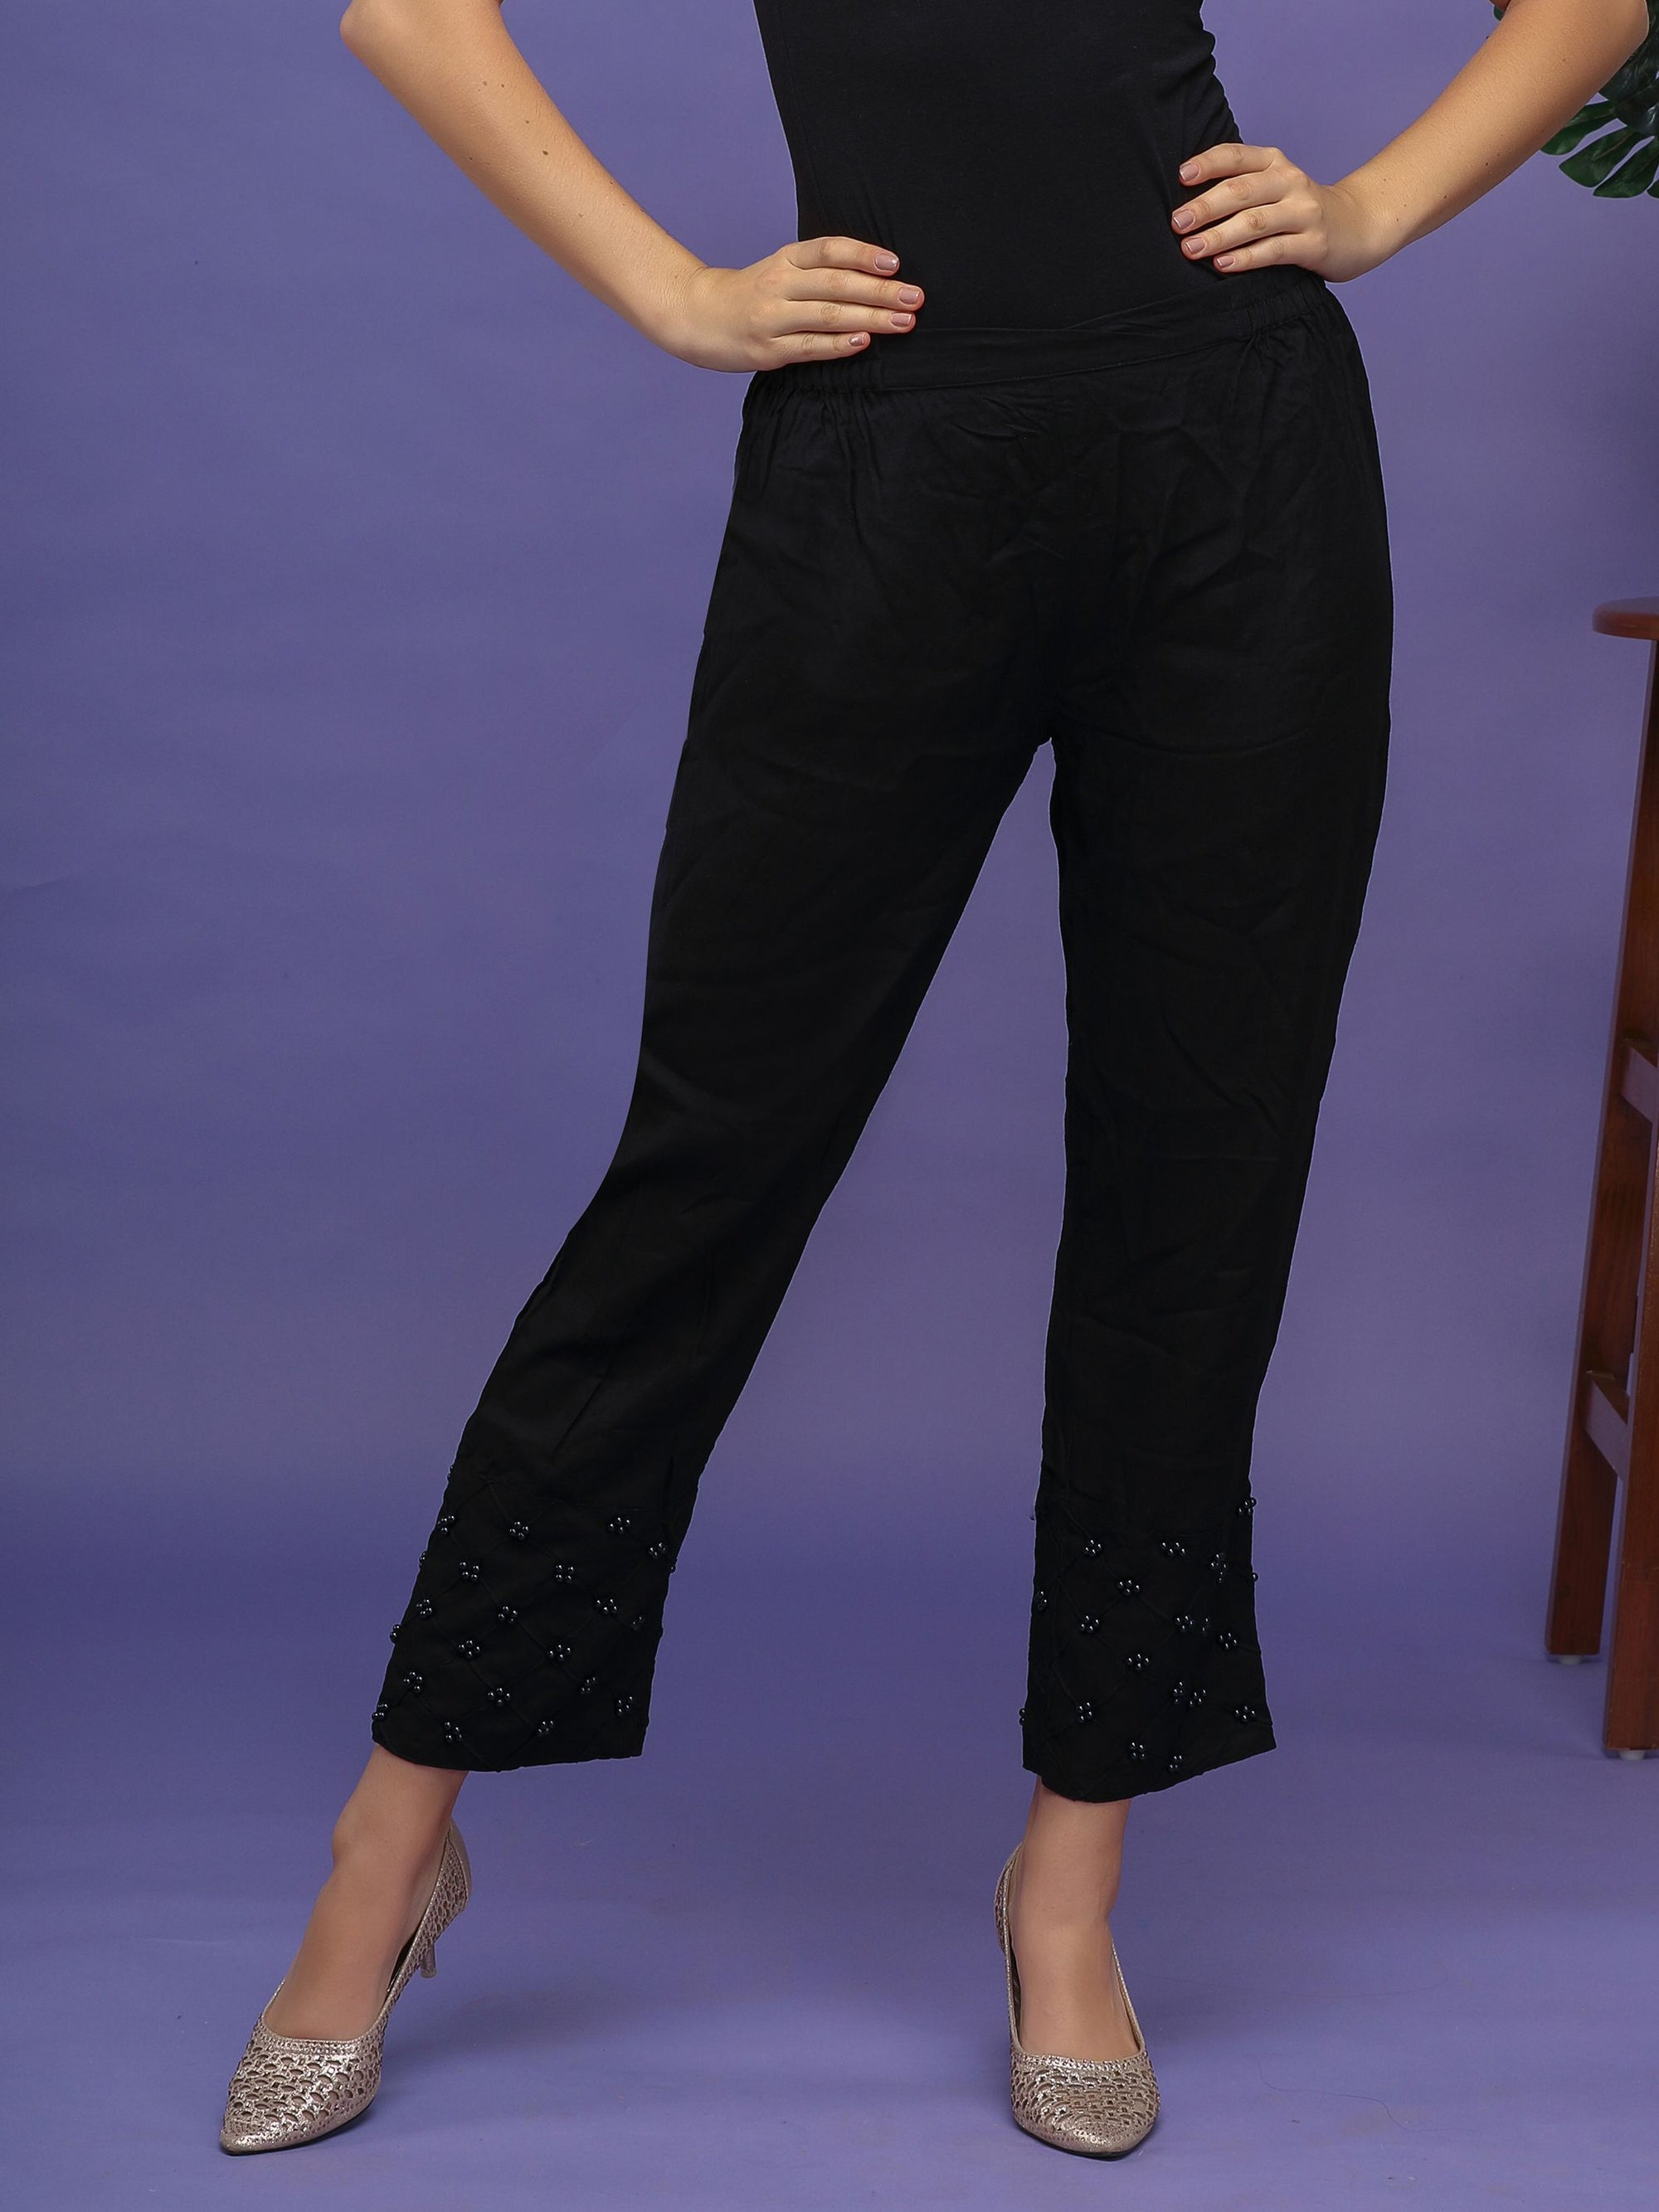 Pearl Ornamentation Laced Pants– Black